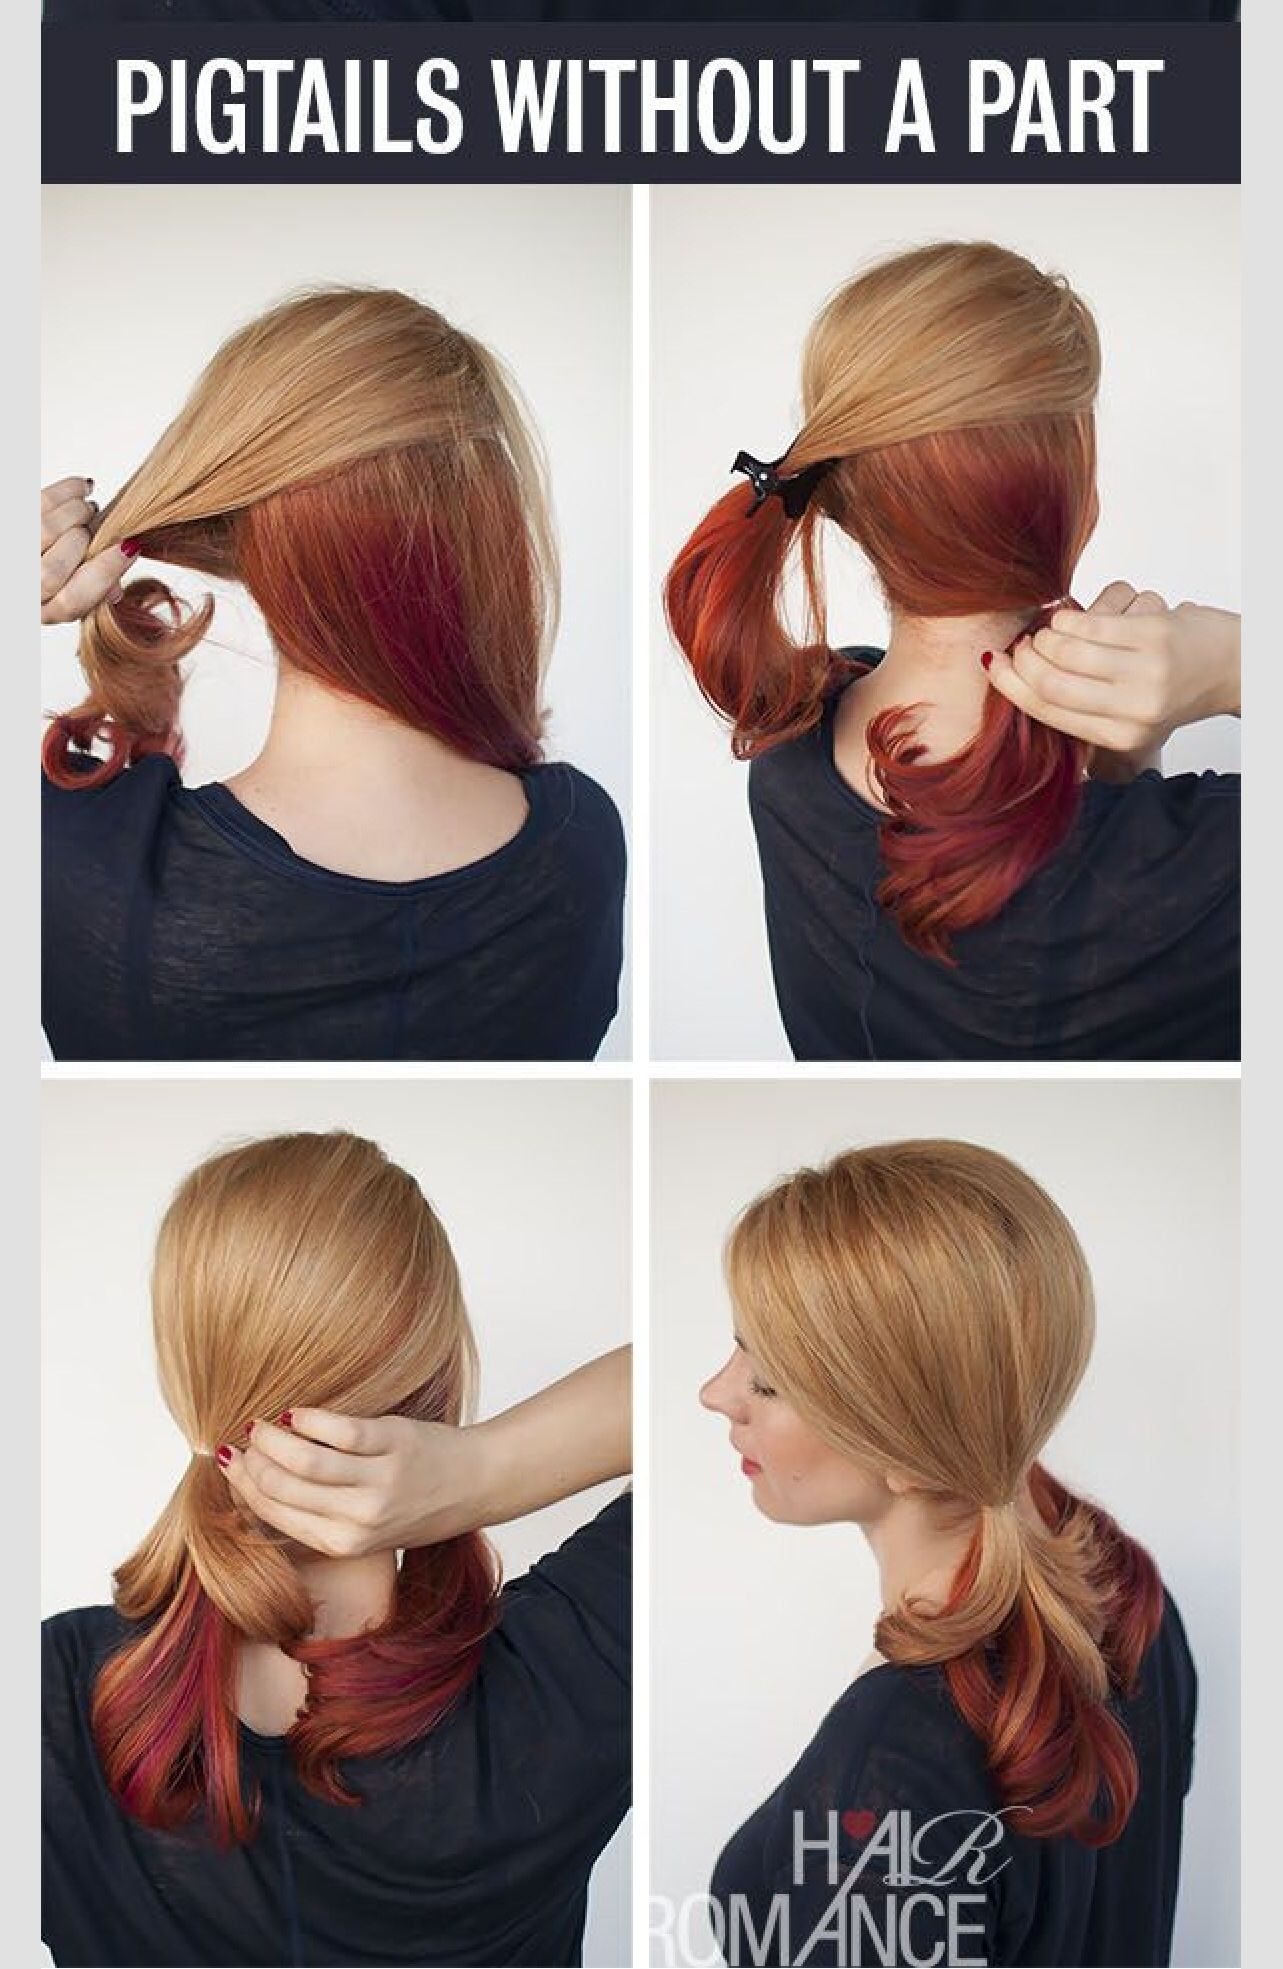 Pig tails without a part goldie locks pinterest pig tails